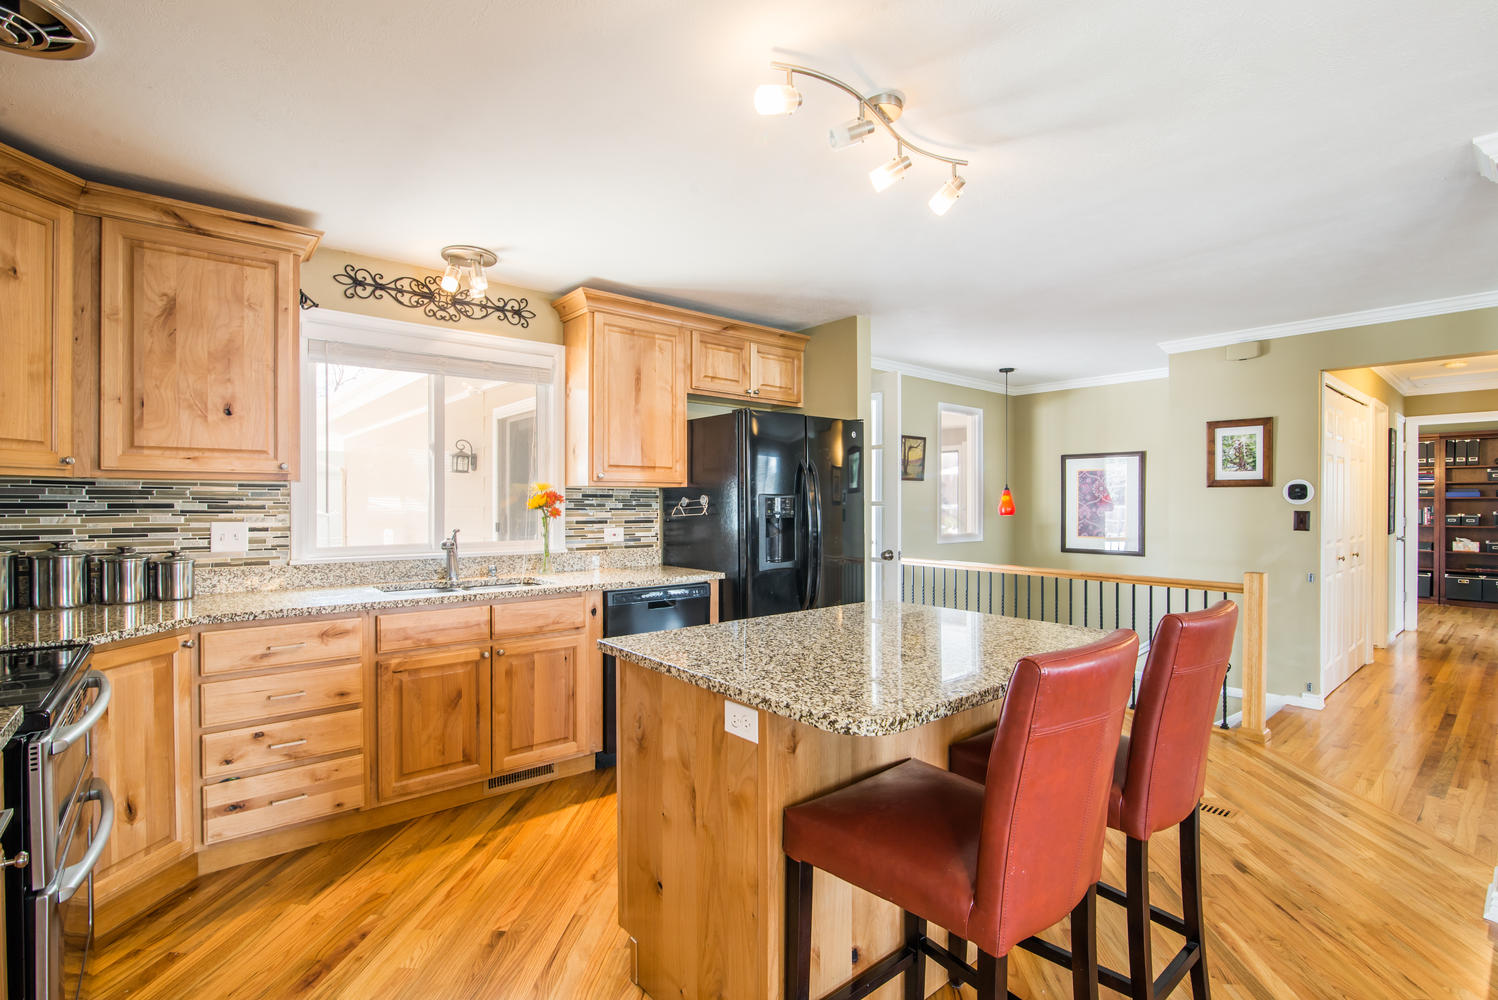 Single Family Home for Sale at Mid-Century Modern with Open Floor Plan 8040 South Kendall Boulevard Littleton, Colorado, 80128 United States